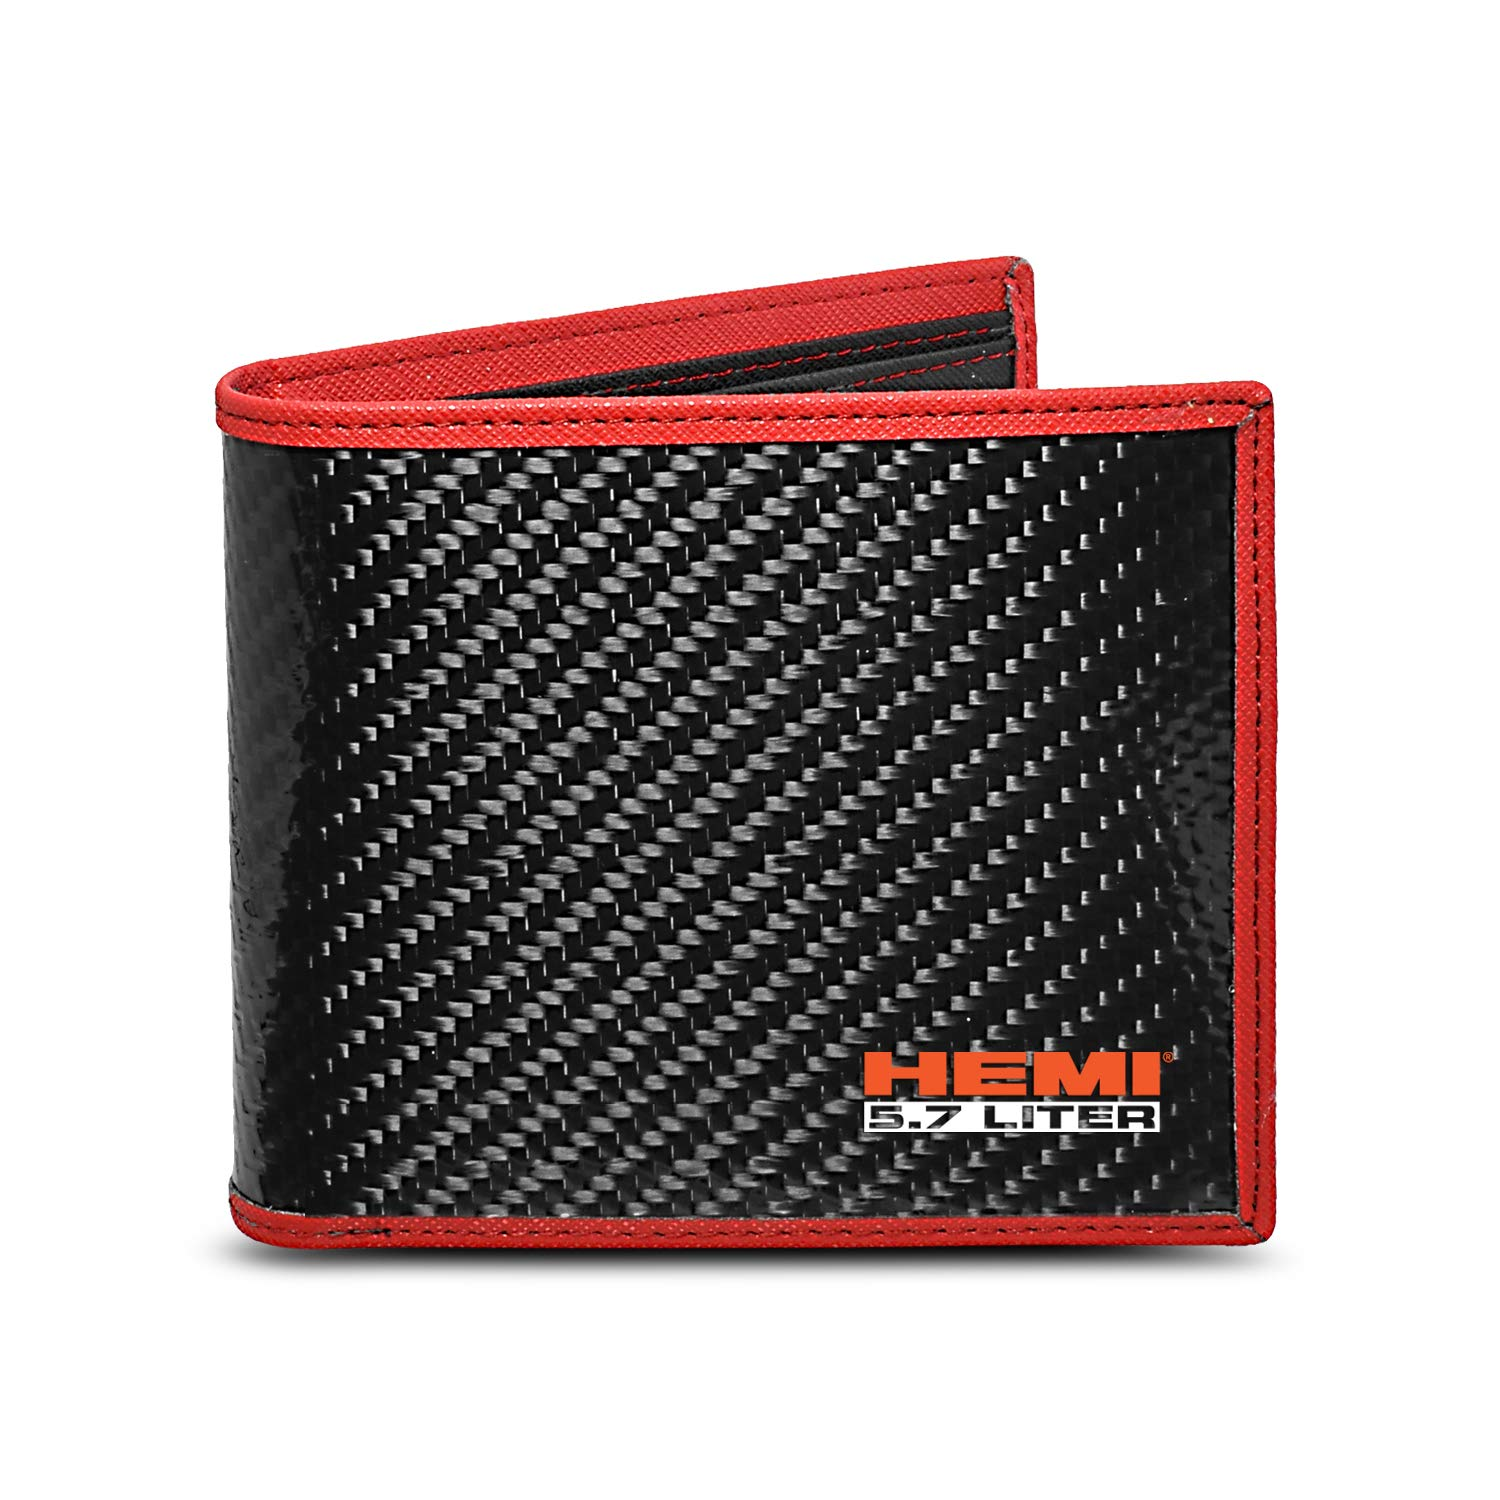 5.7 Liter HEMI Real Premium Black Carbon Fiber Wallet with Red Stitched Edge Bi-fold Wallet